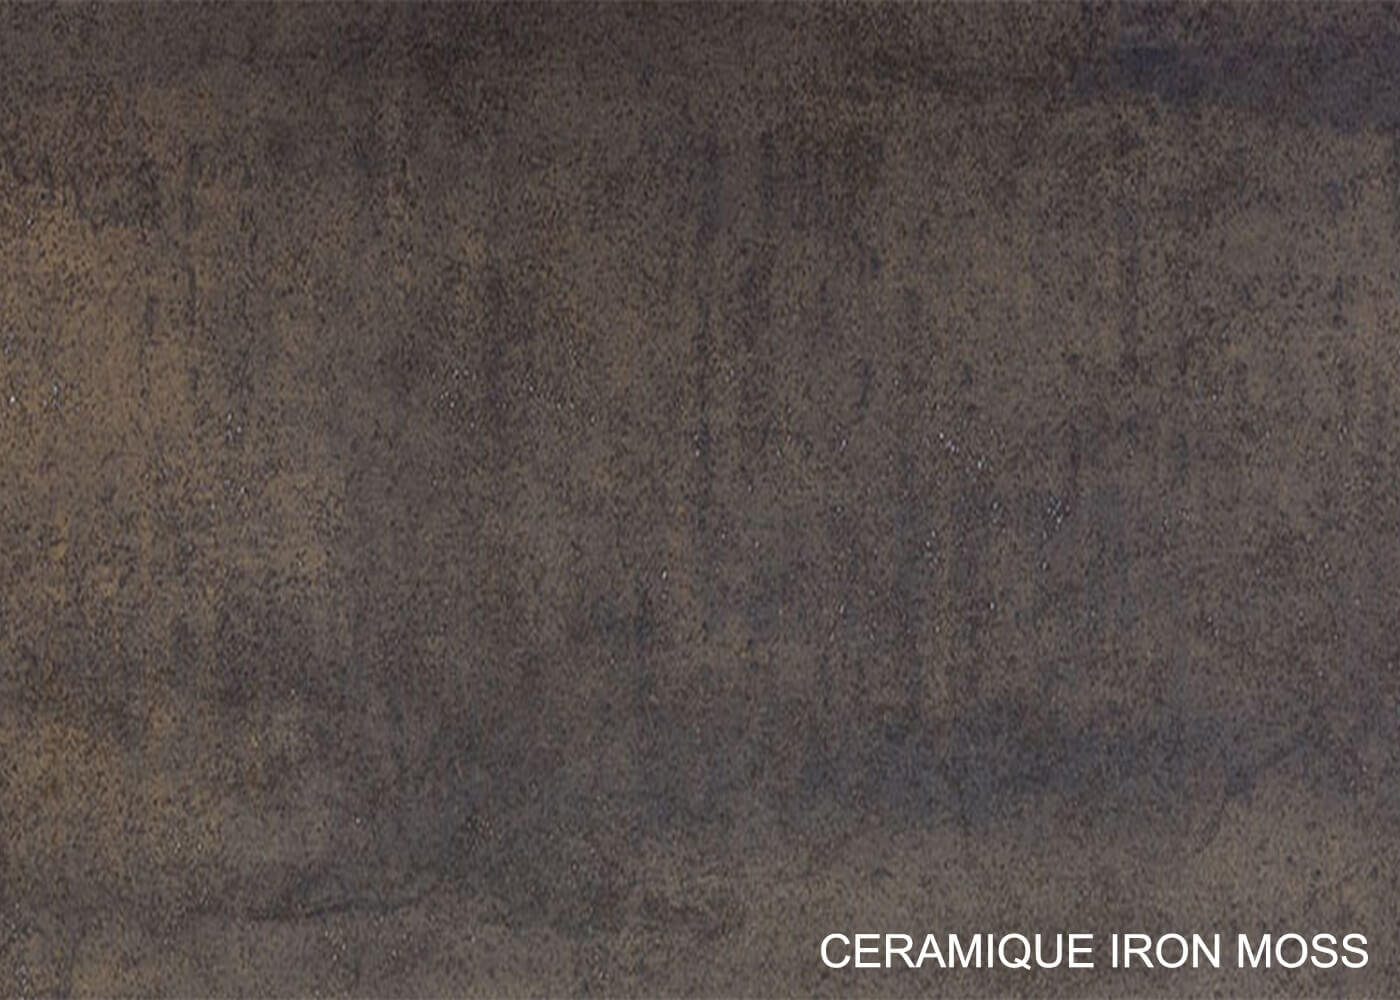 CERAMIQUE IRON MOSS